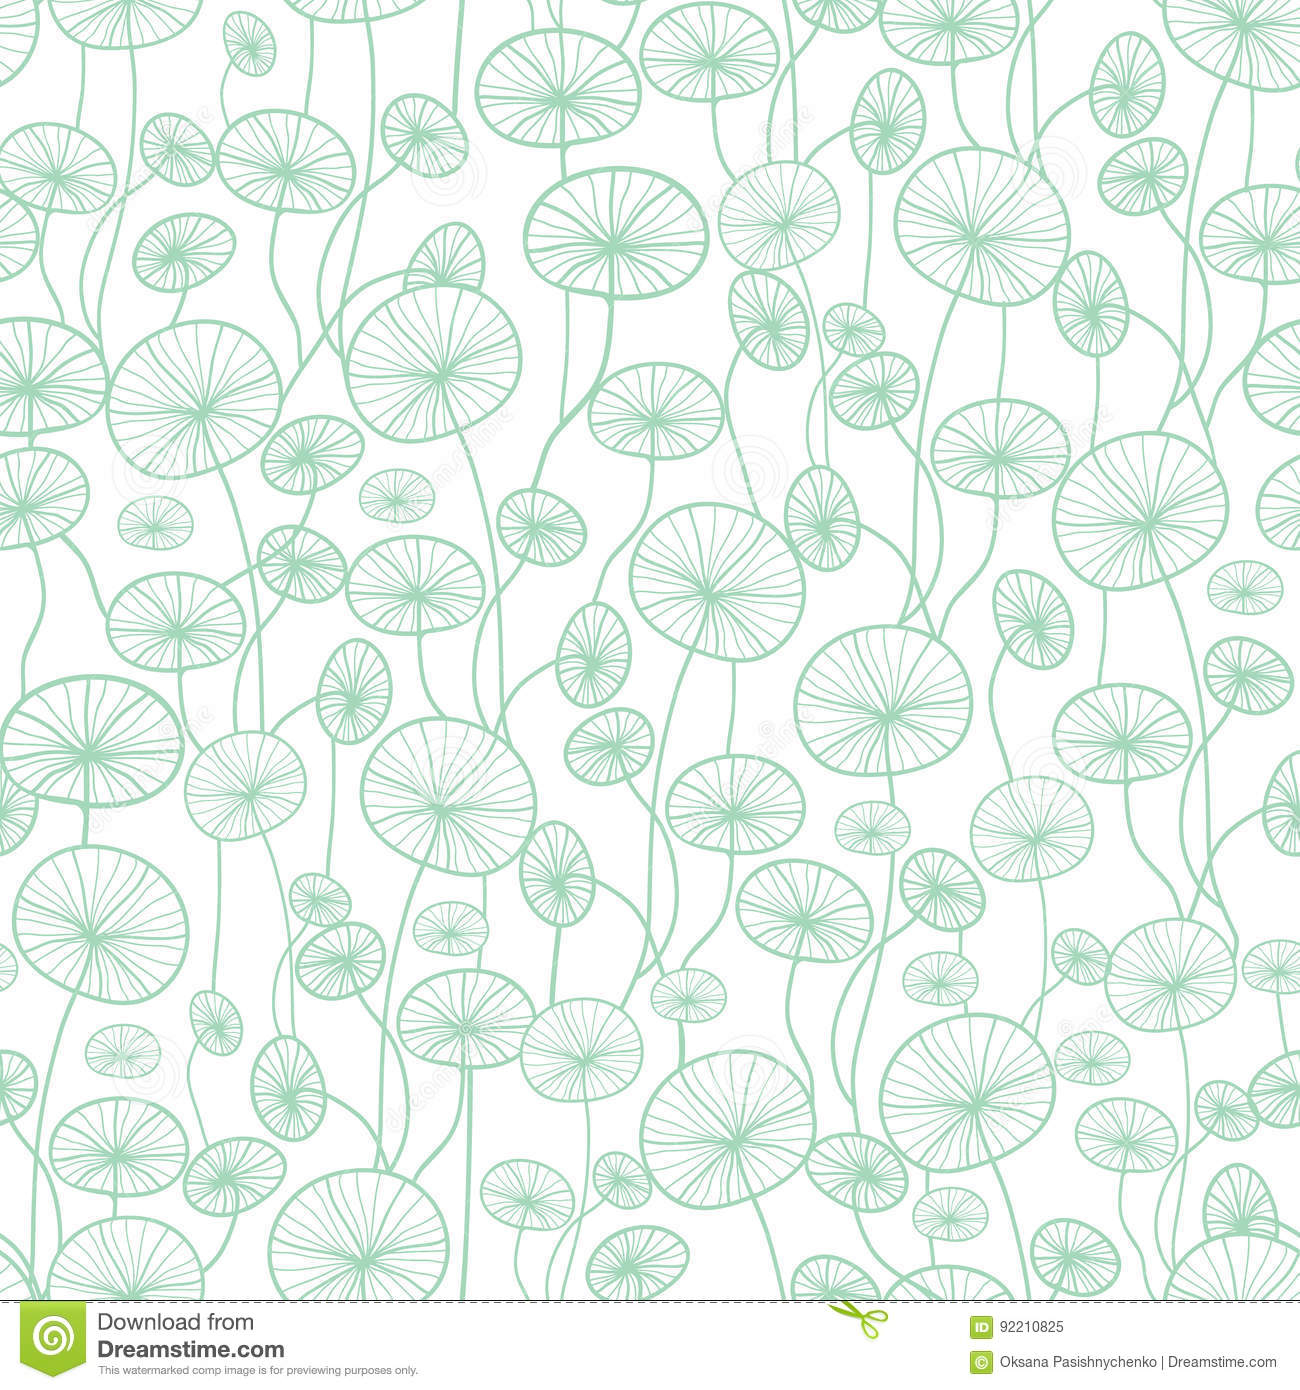 vector mint green and white underwater seaweed plant seaweed vector free seaweed vector background